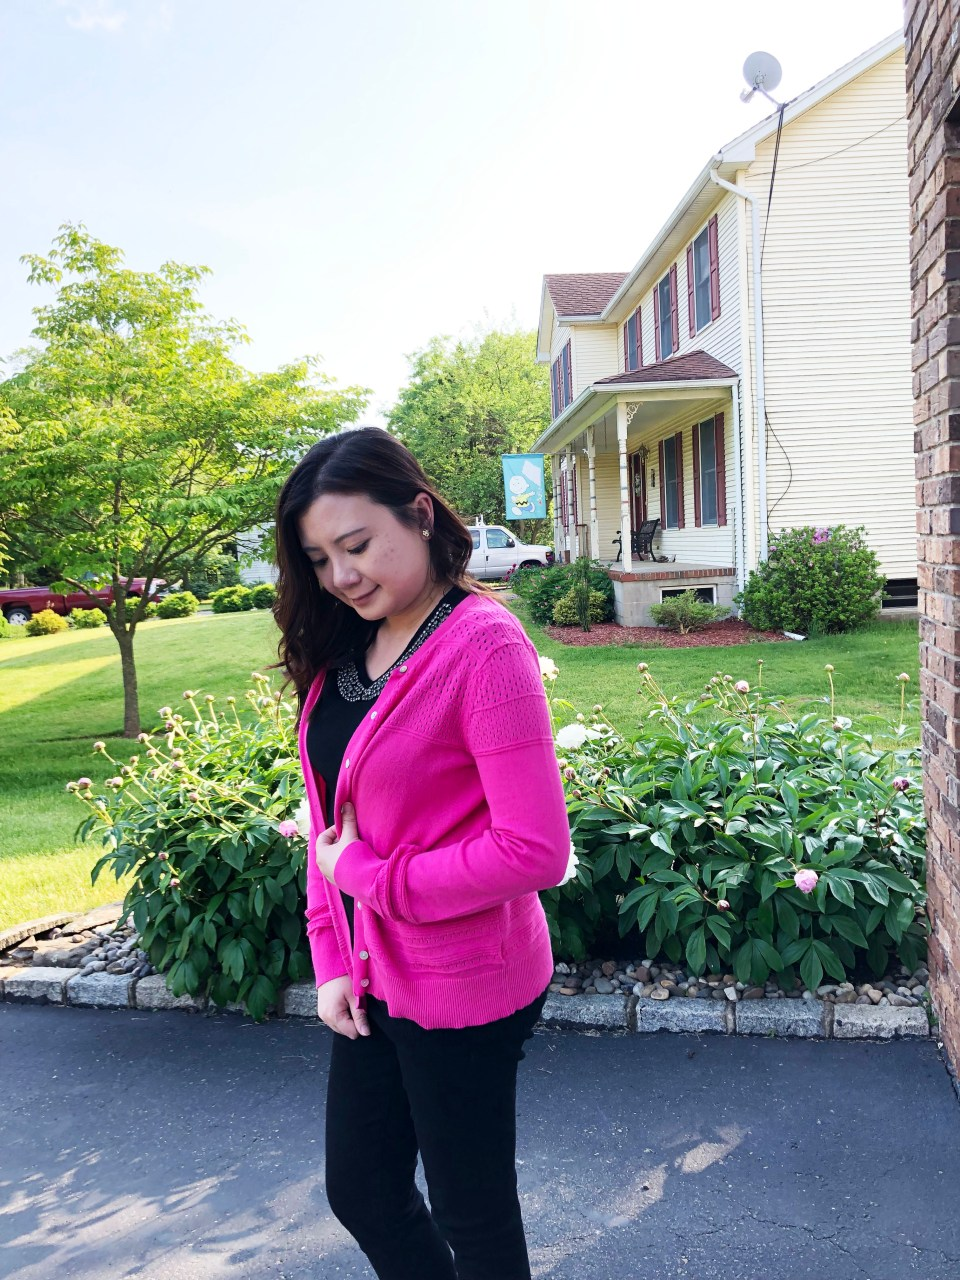 Jeweled Peter Pan Collar + Pink Cardigan 4